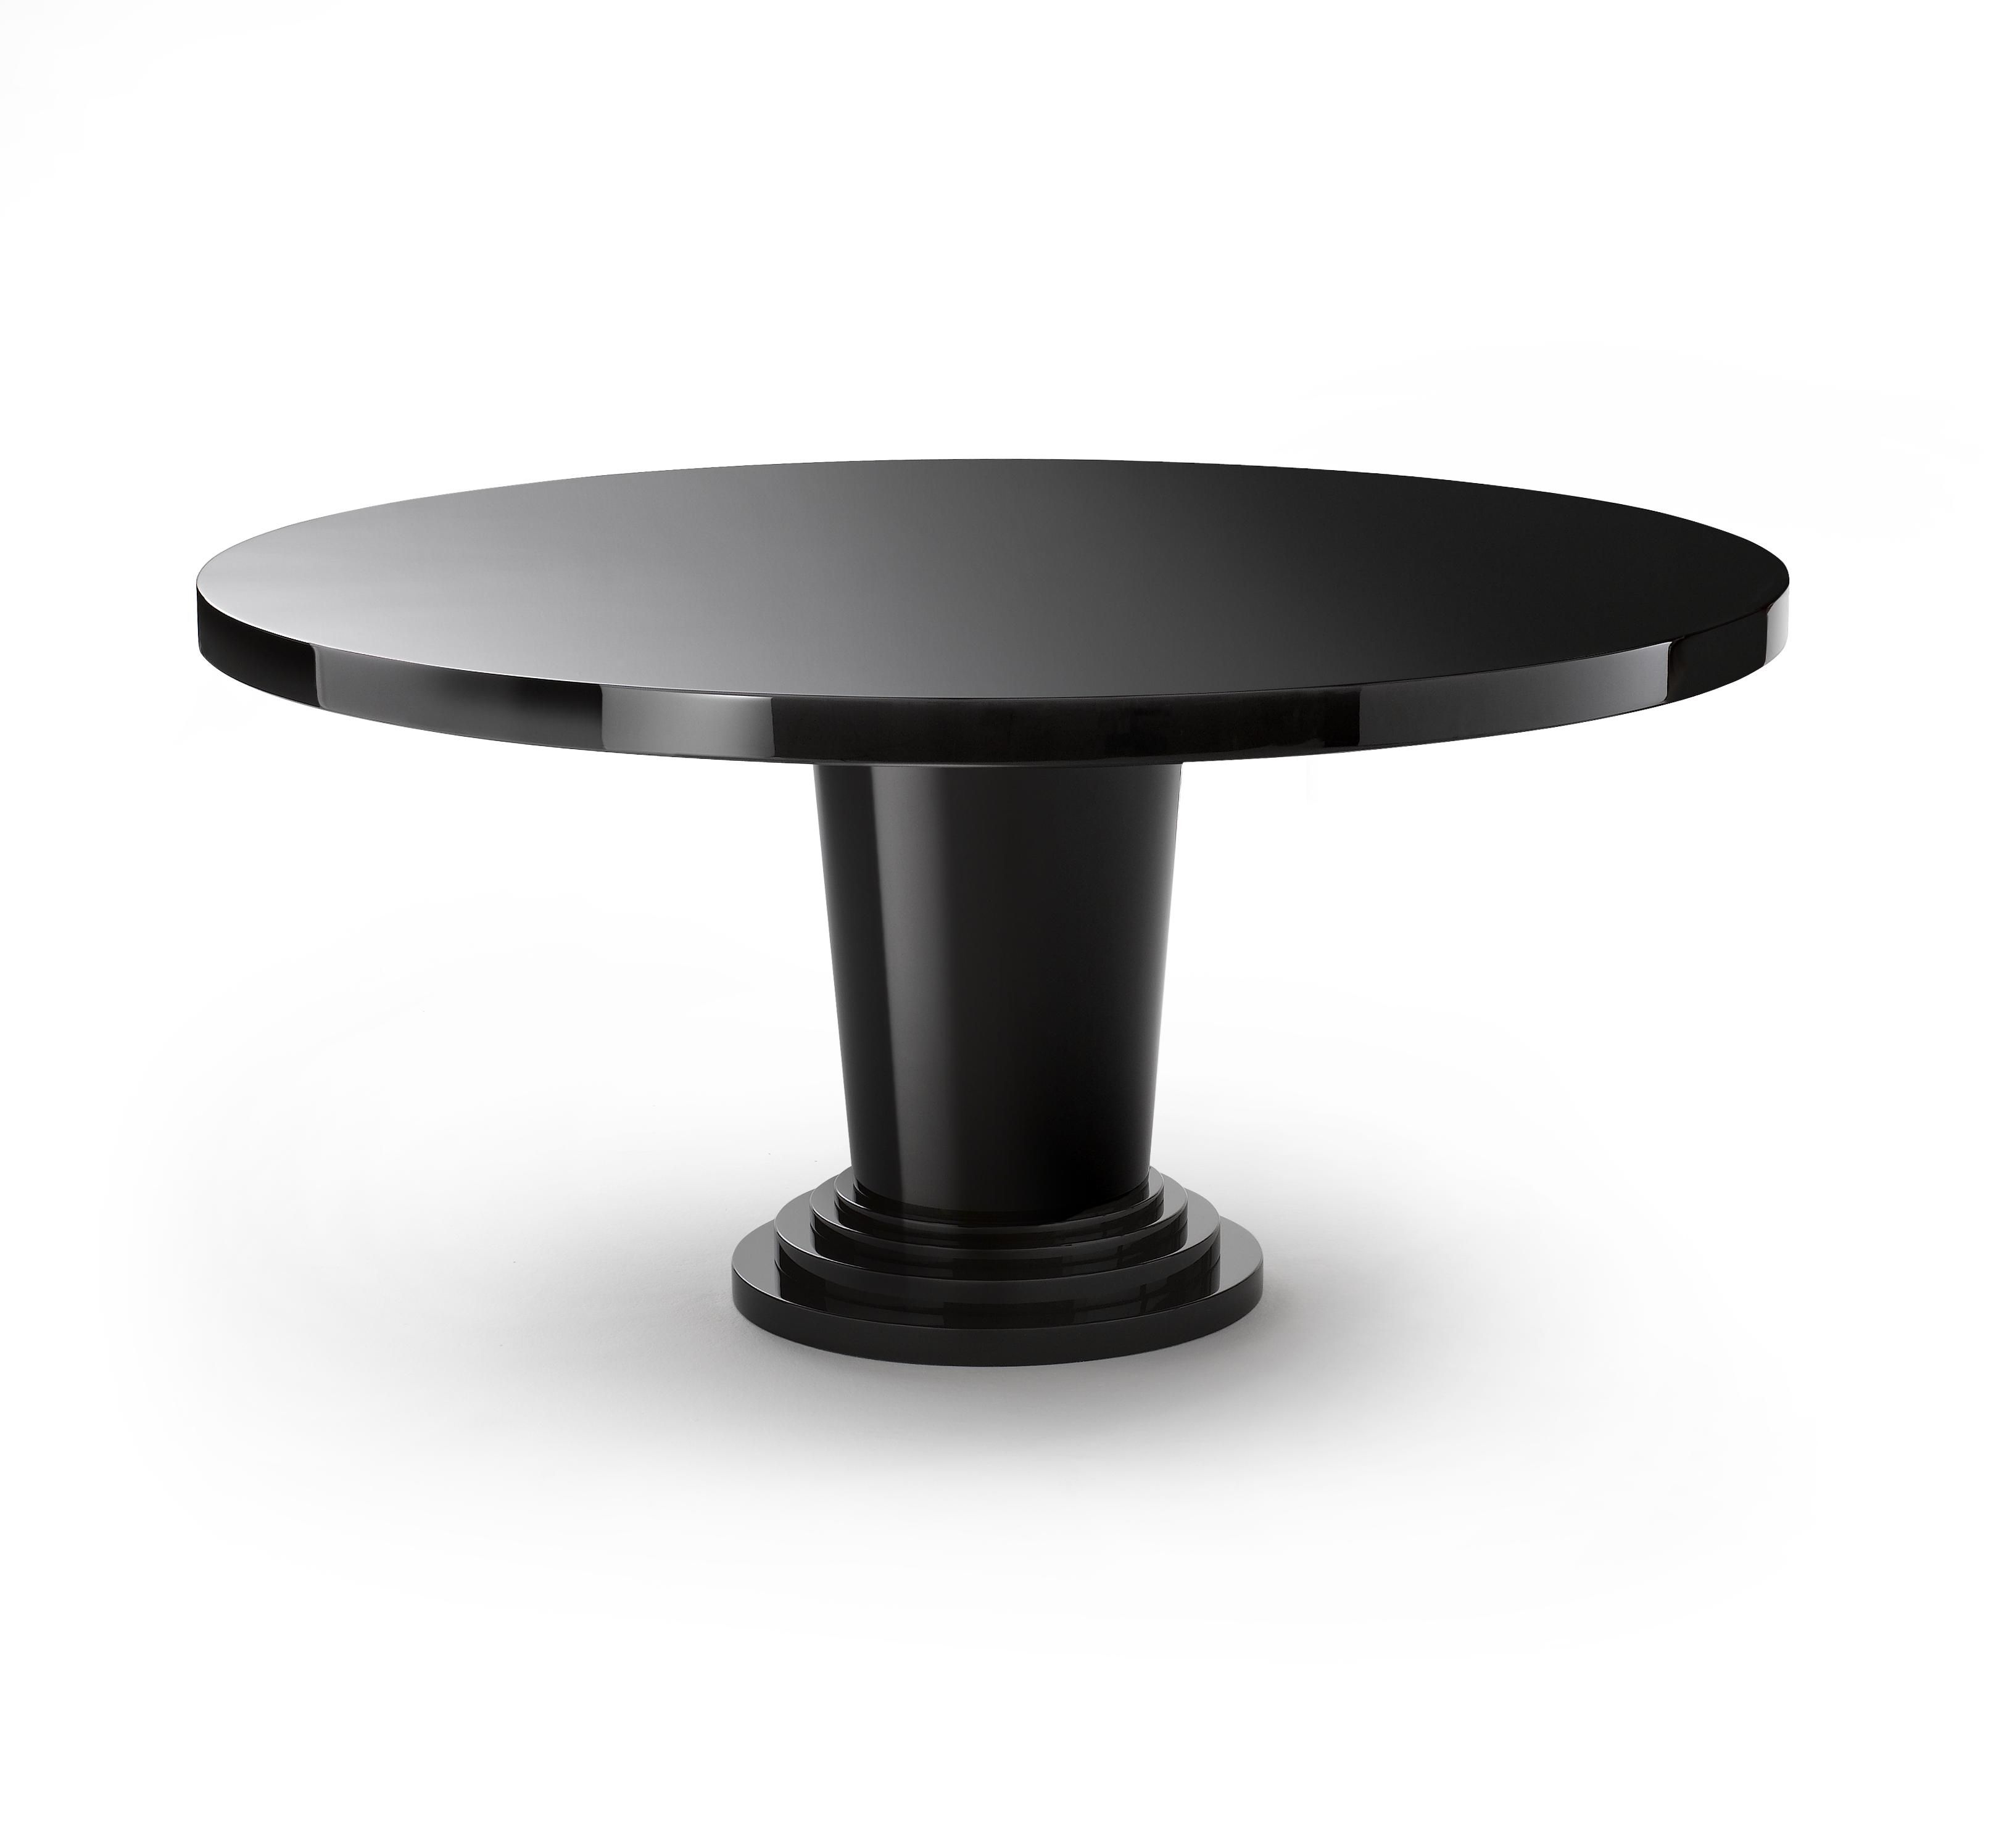 Table In High Gloss Black Lacquer, Round Black High Gloss Dining Table